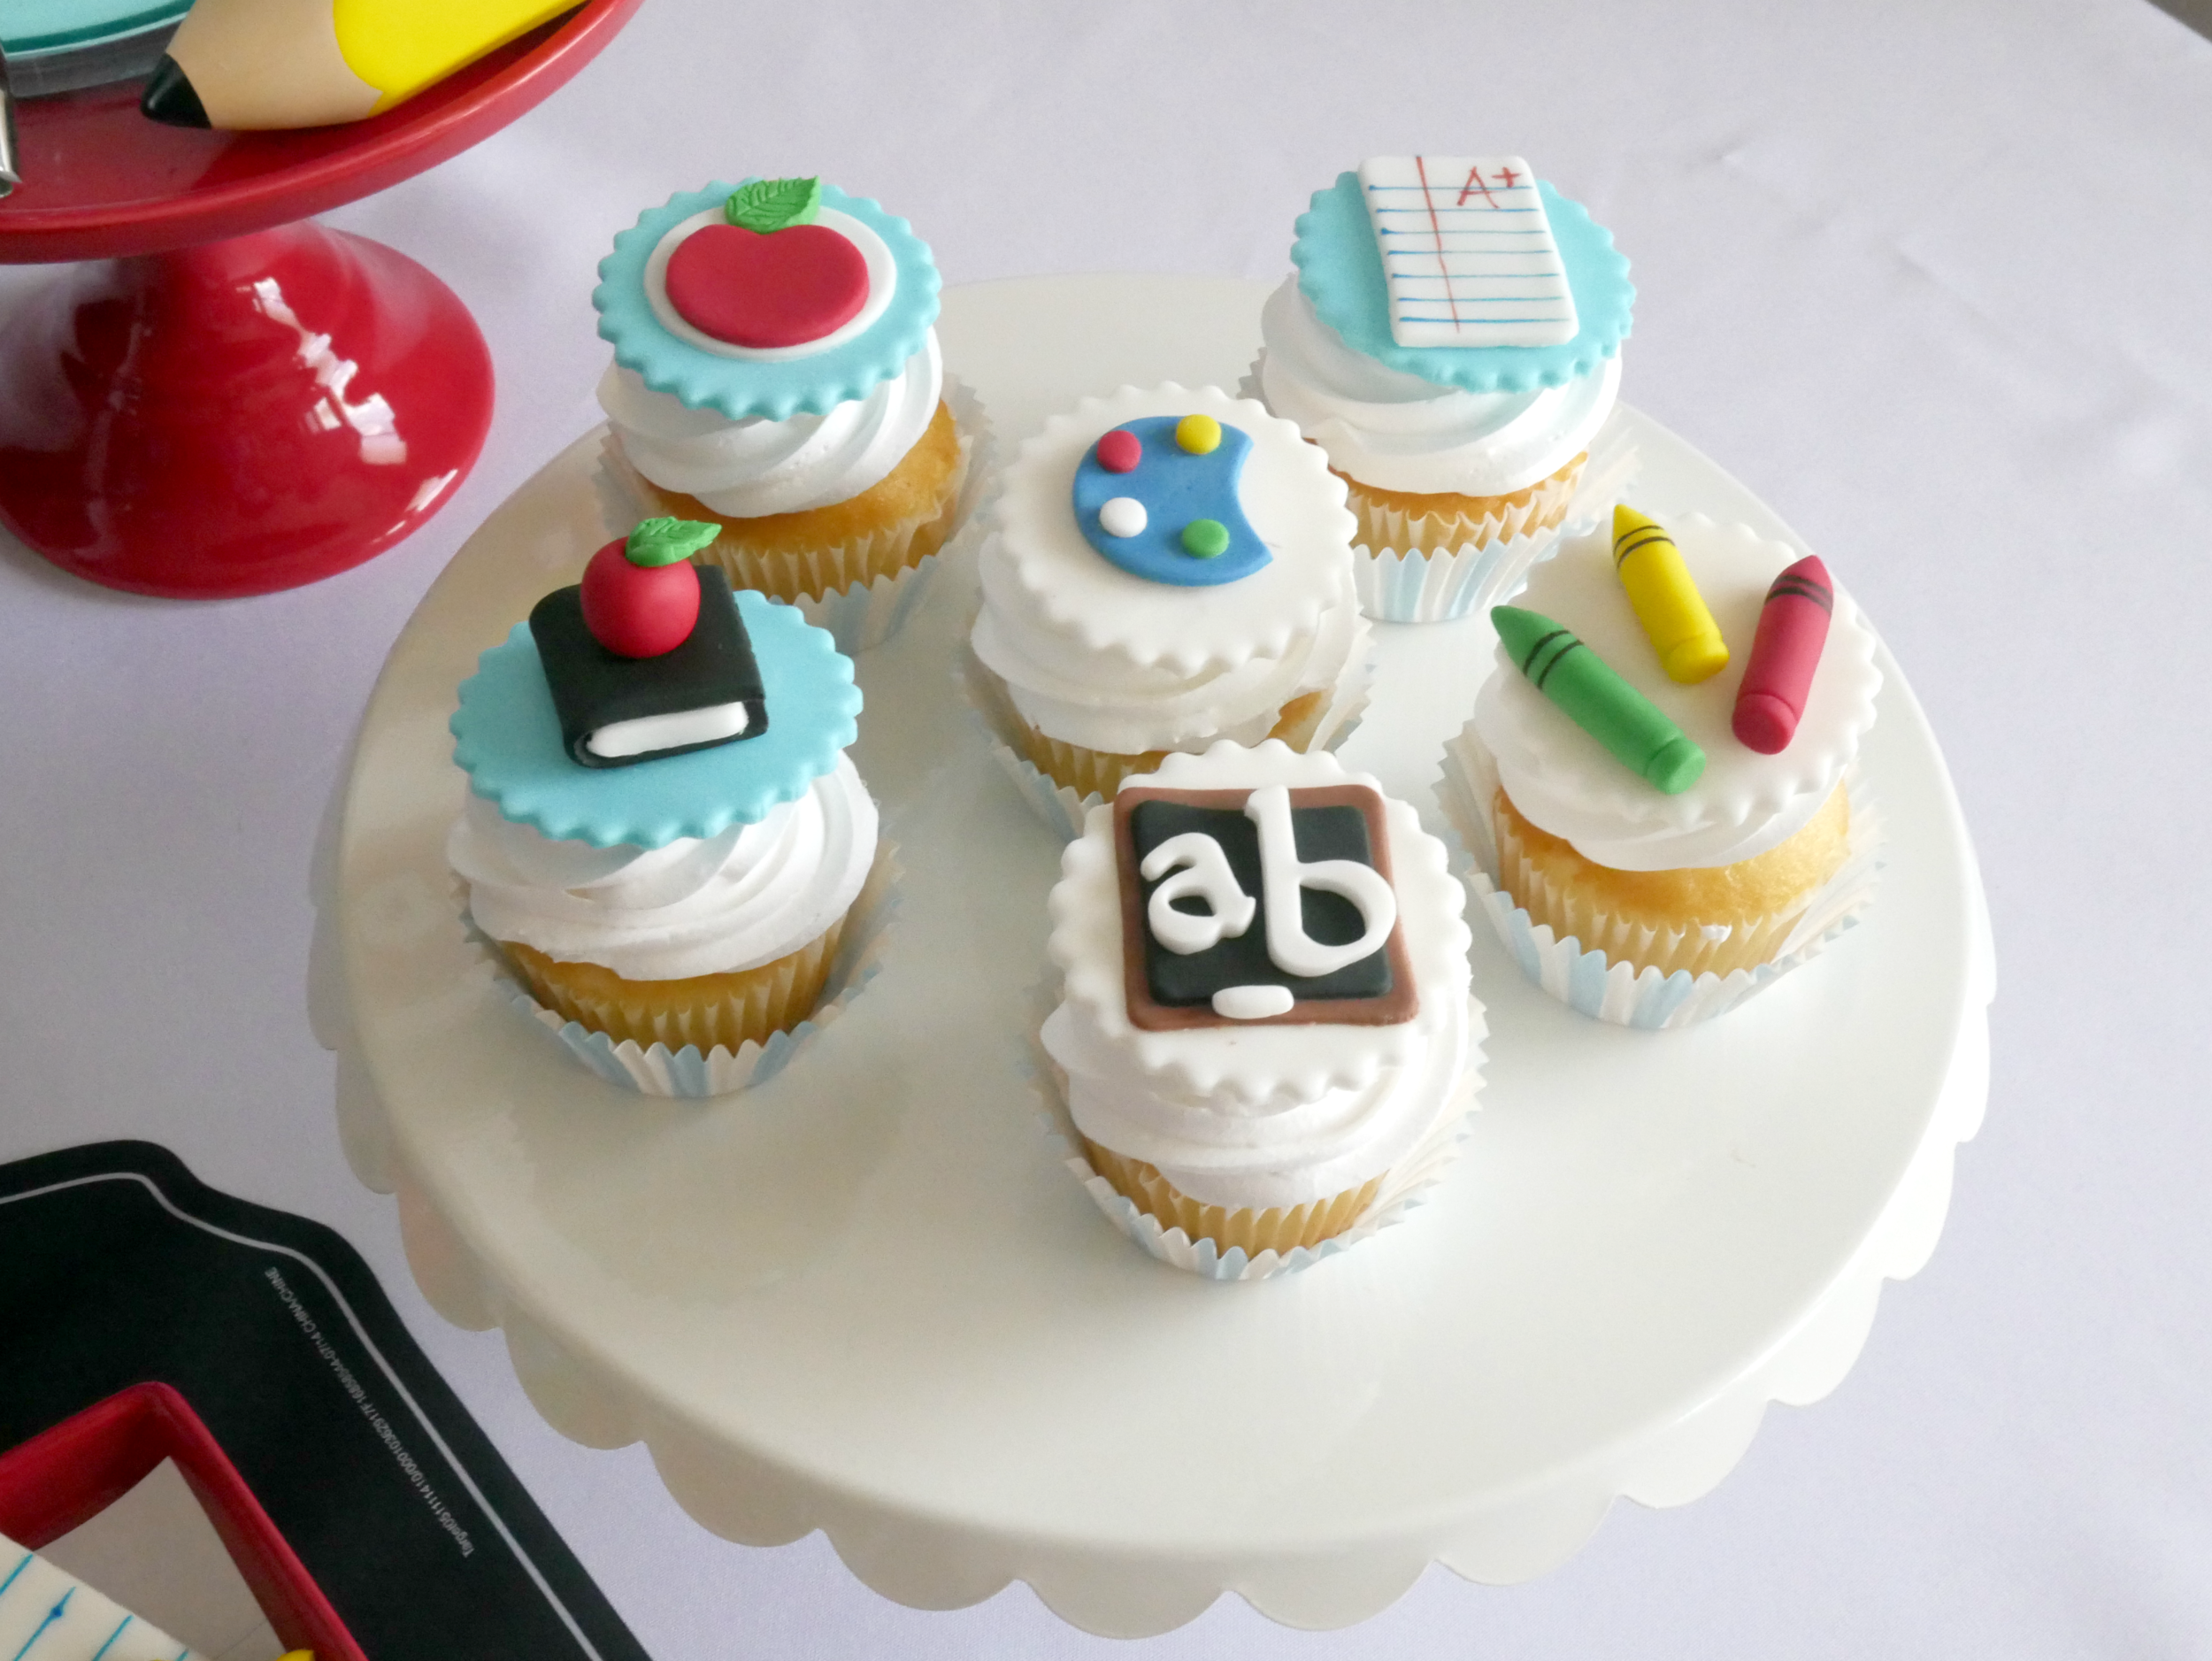 Vanilla cupcakes with back to school themed fondant cupcake toppers. See all the details on Mint Event Design www.minteventdesign.com #backtoschool #backtoschoolideas #kidsparty #kidspartyideas #kidsparties #cupcakeideas